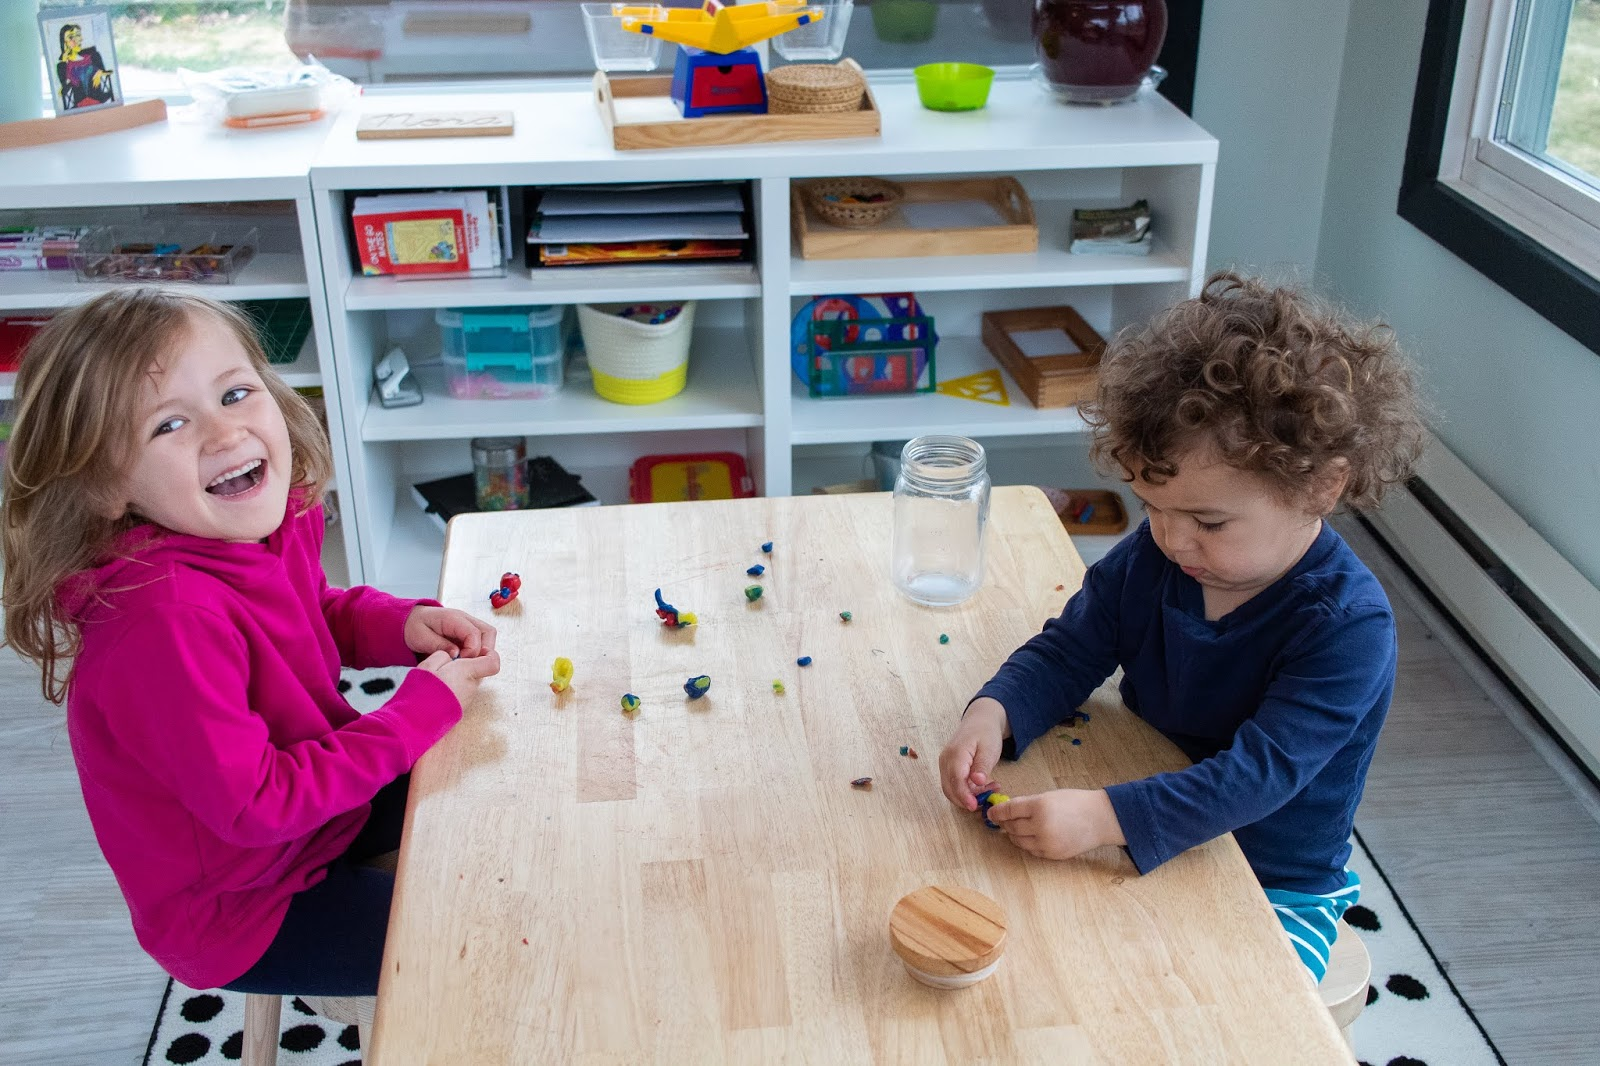 Here is a look at a Montessori work cycle at home and some of the activities that children might choose during that time.